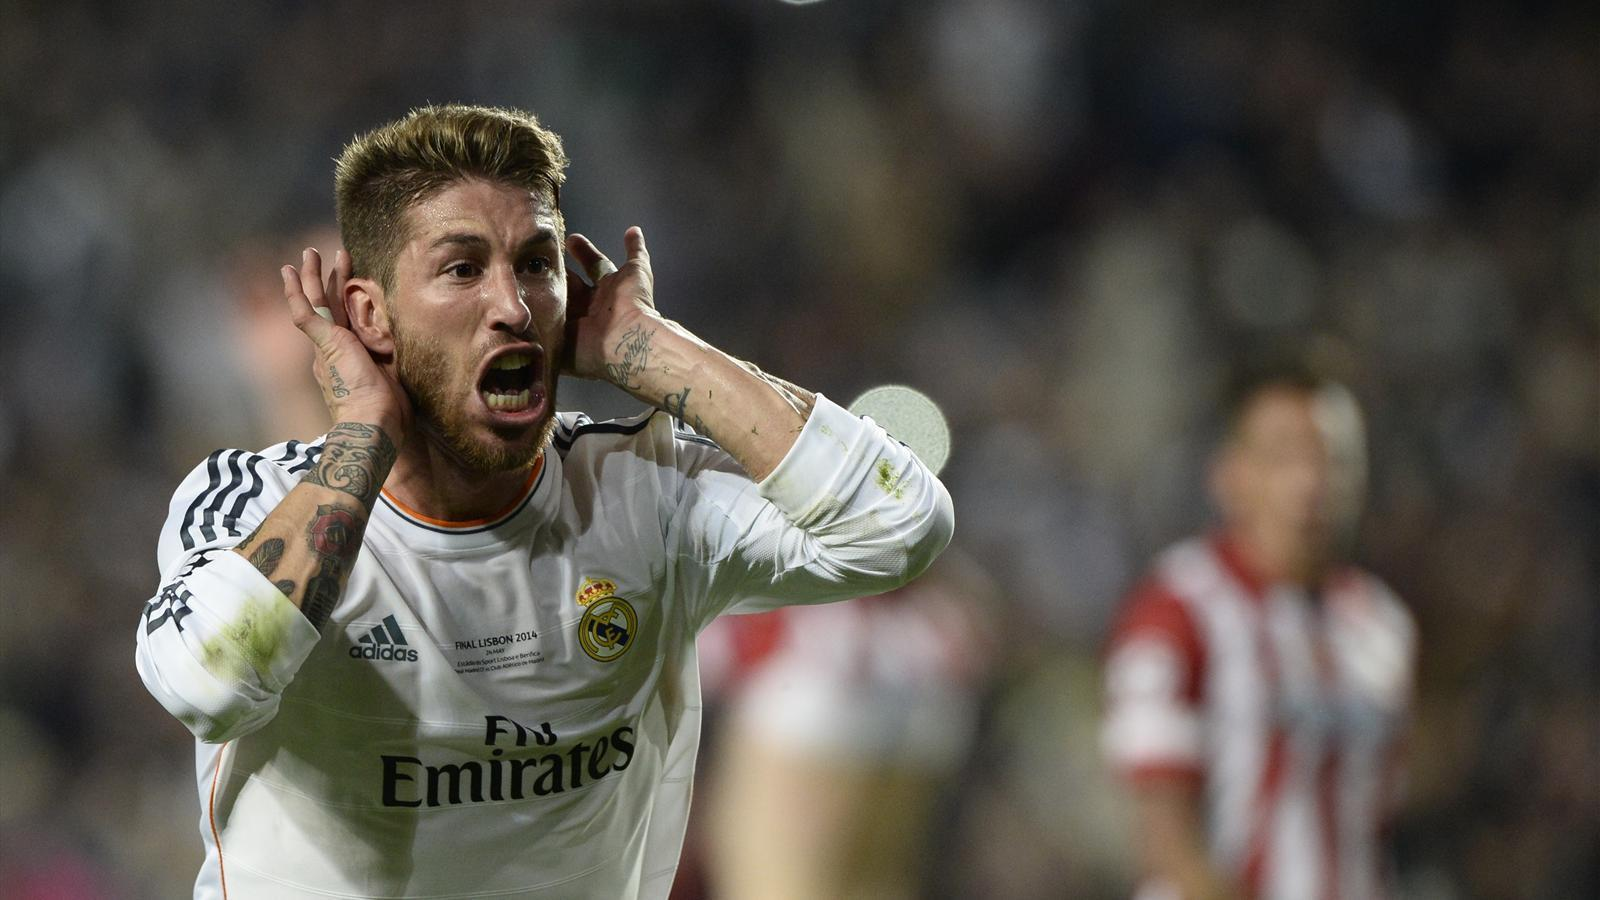 sergio ramos hd images - photo #14